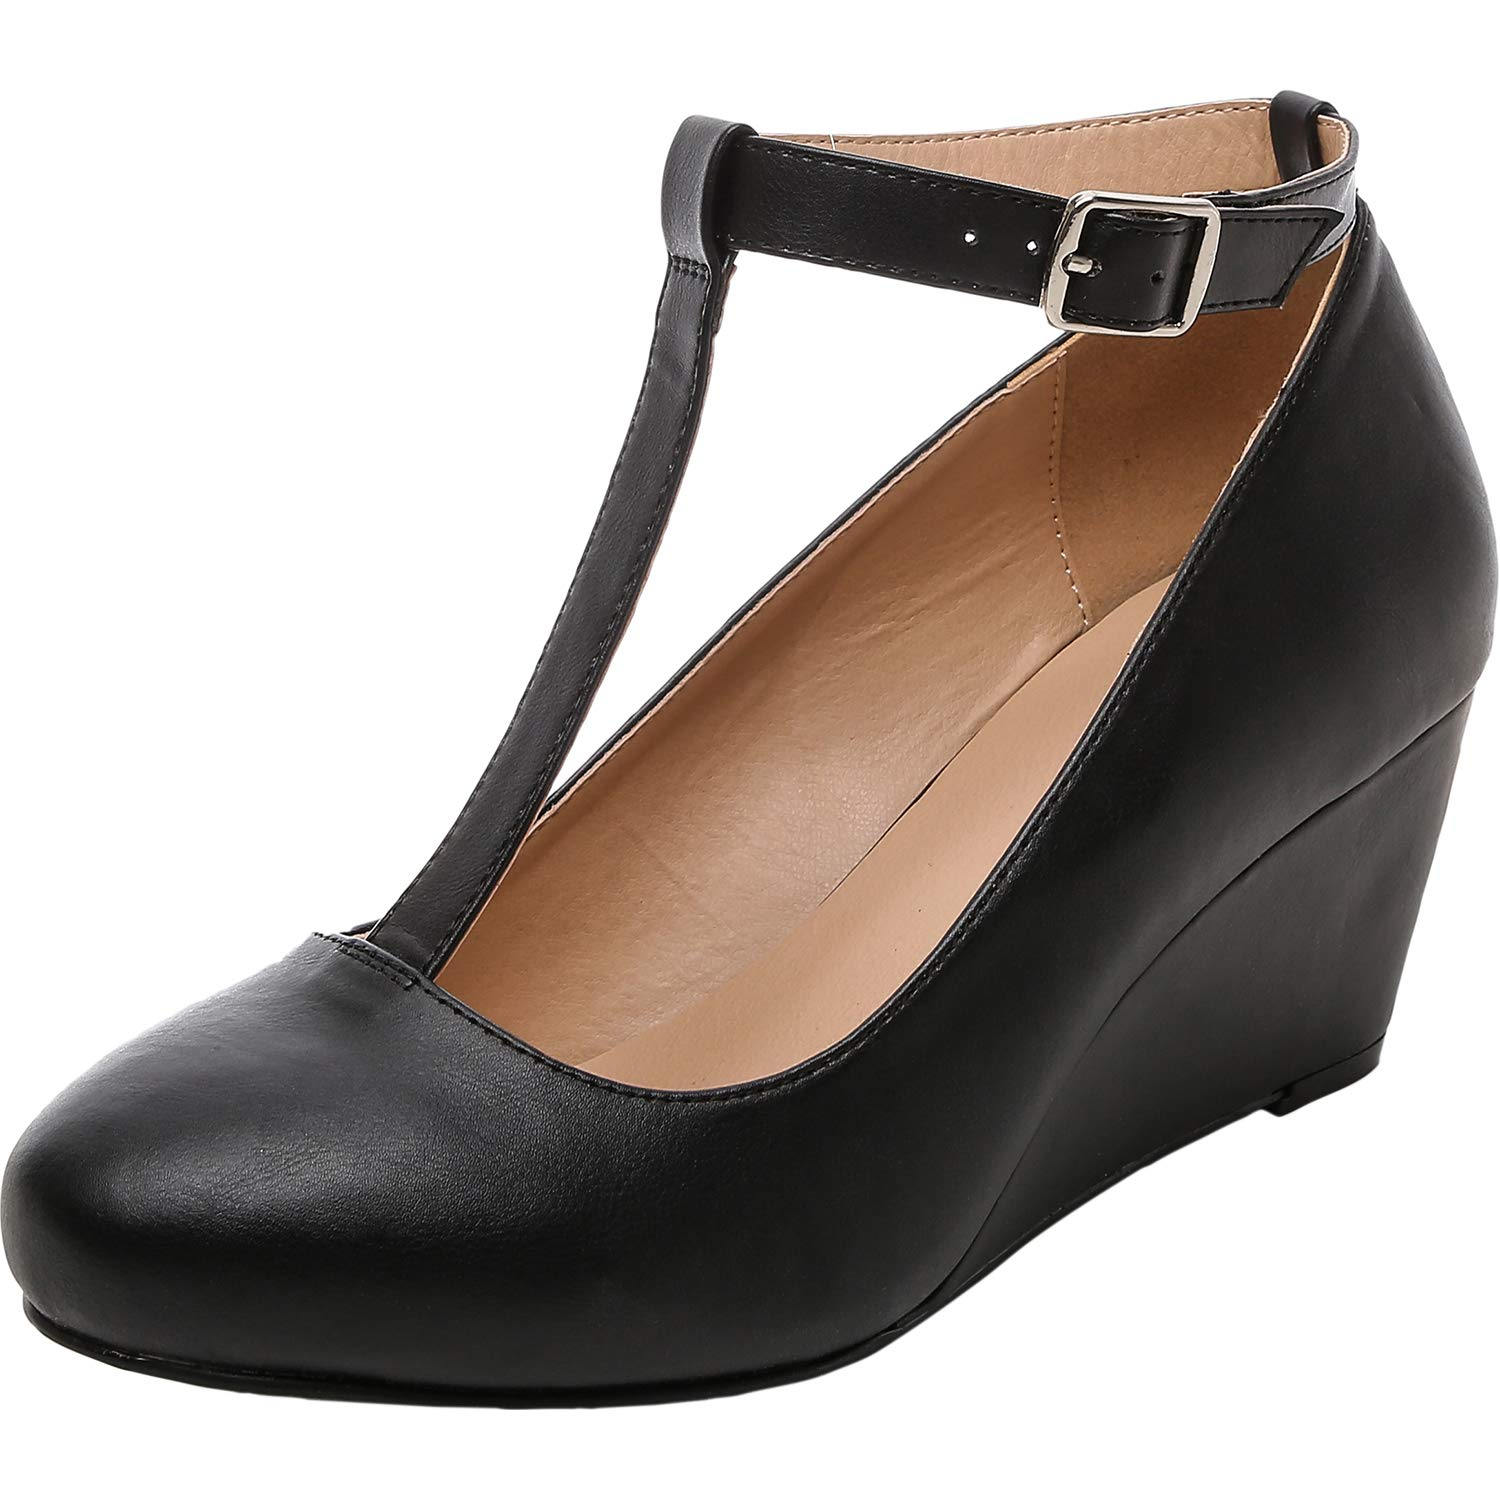 Retro Vintage Style Wide Shoes Luoika Womens Wide Width Wedge Shoes - Mary Jane Heel Pump with T-Strap. $44.99 AT vintagedancer.com